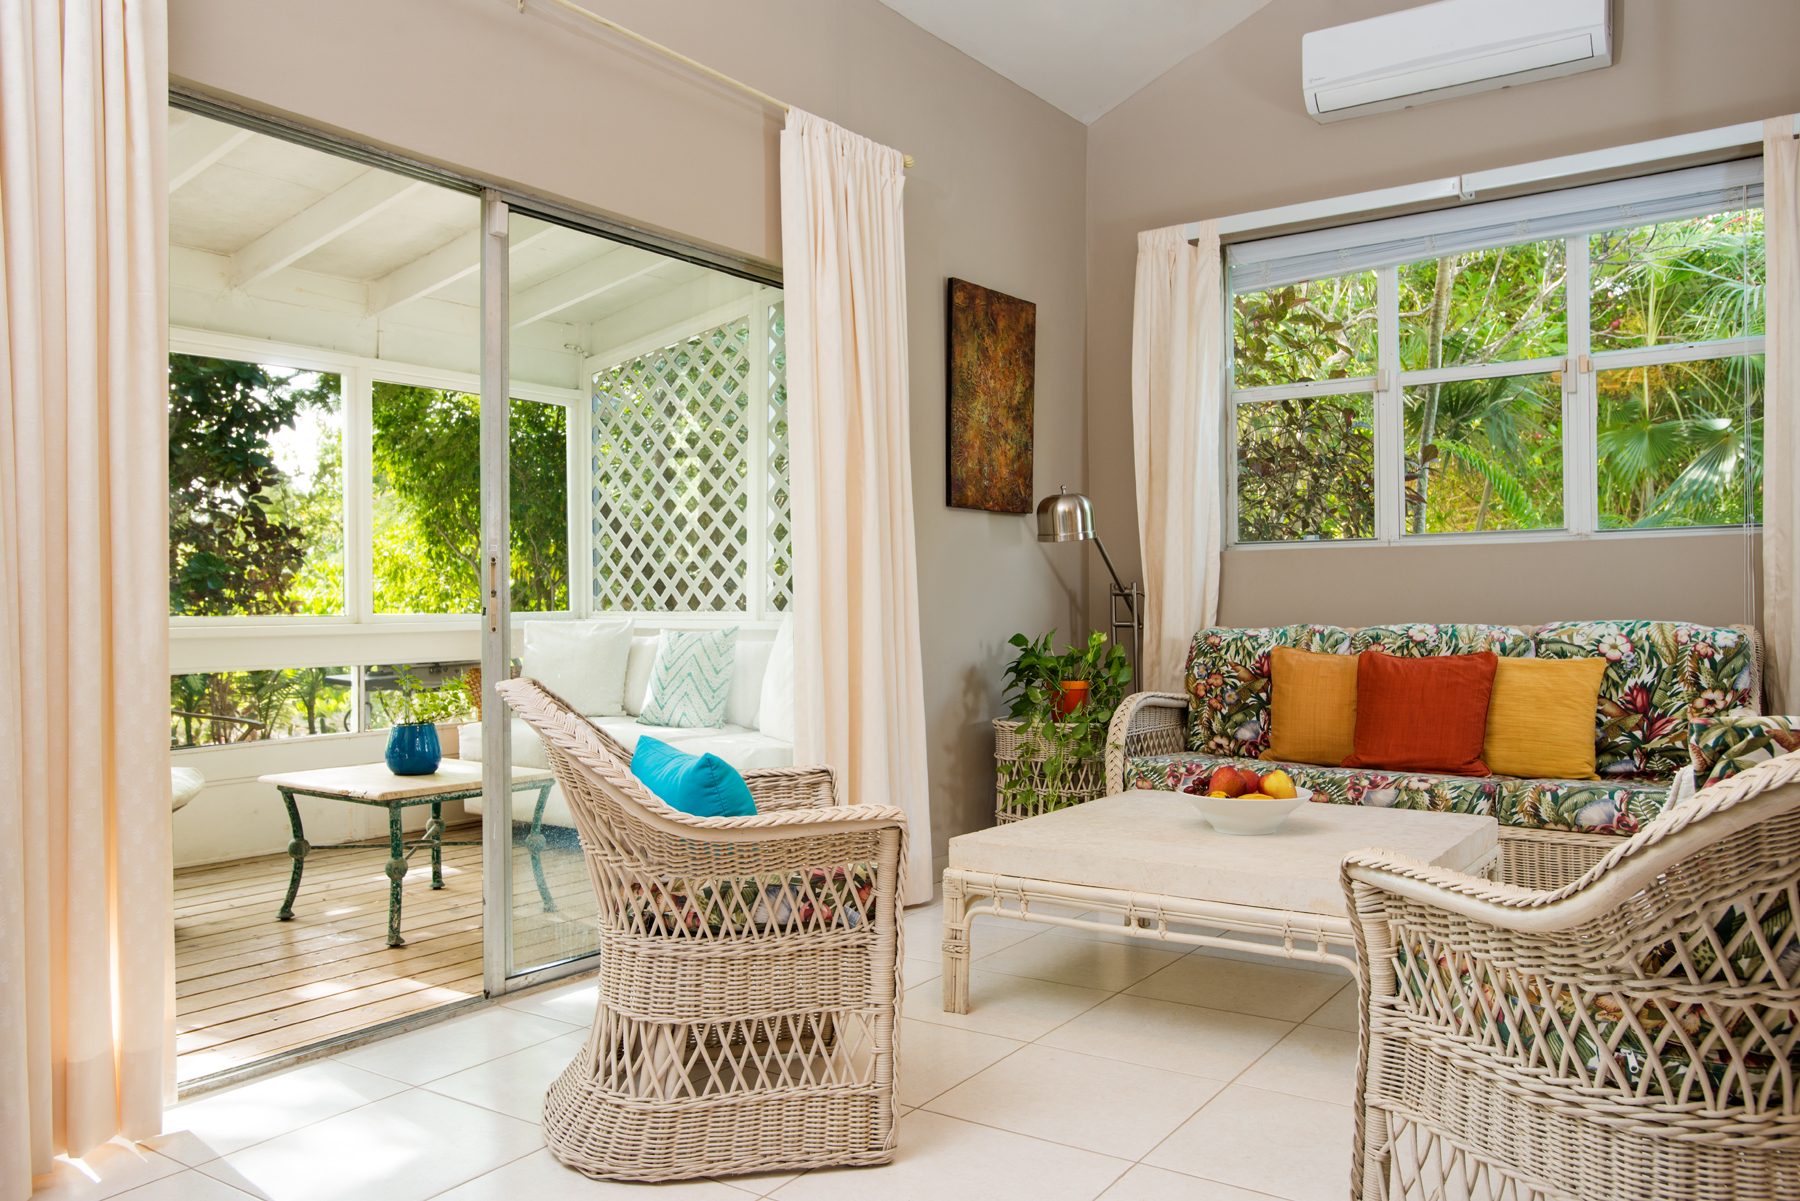 Additional photo for property listing at Tree House The Bight, Providenciales Turks And Caicos Islands